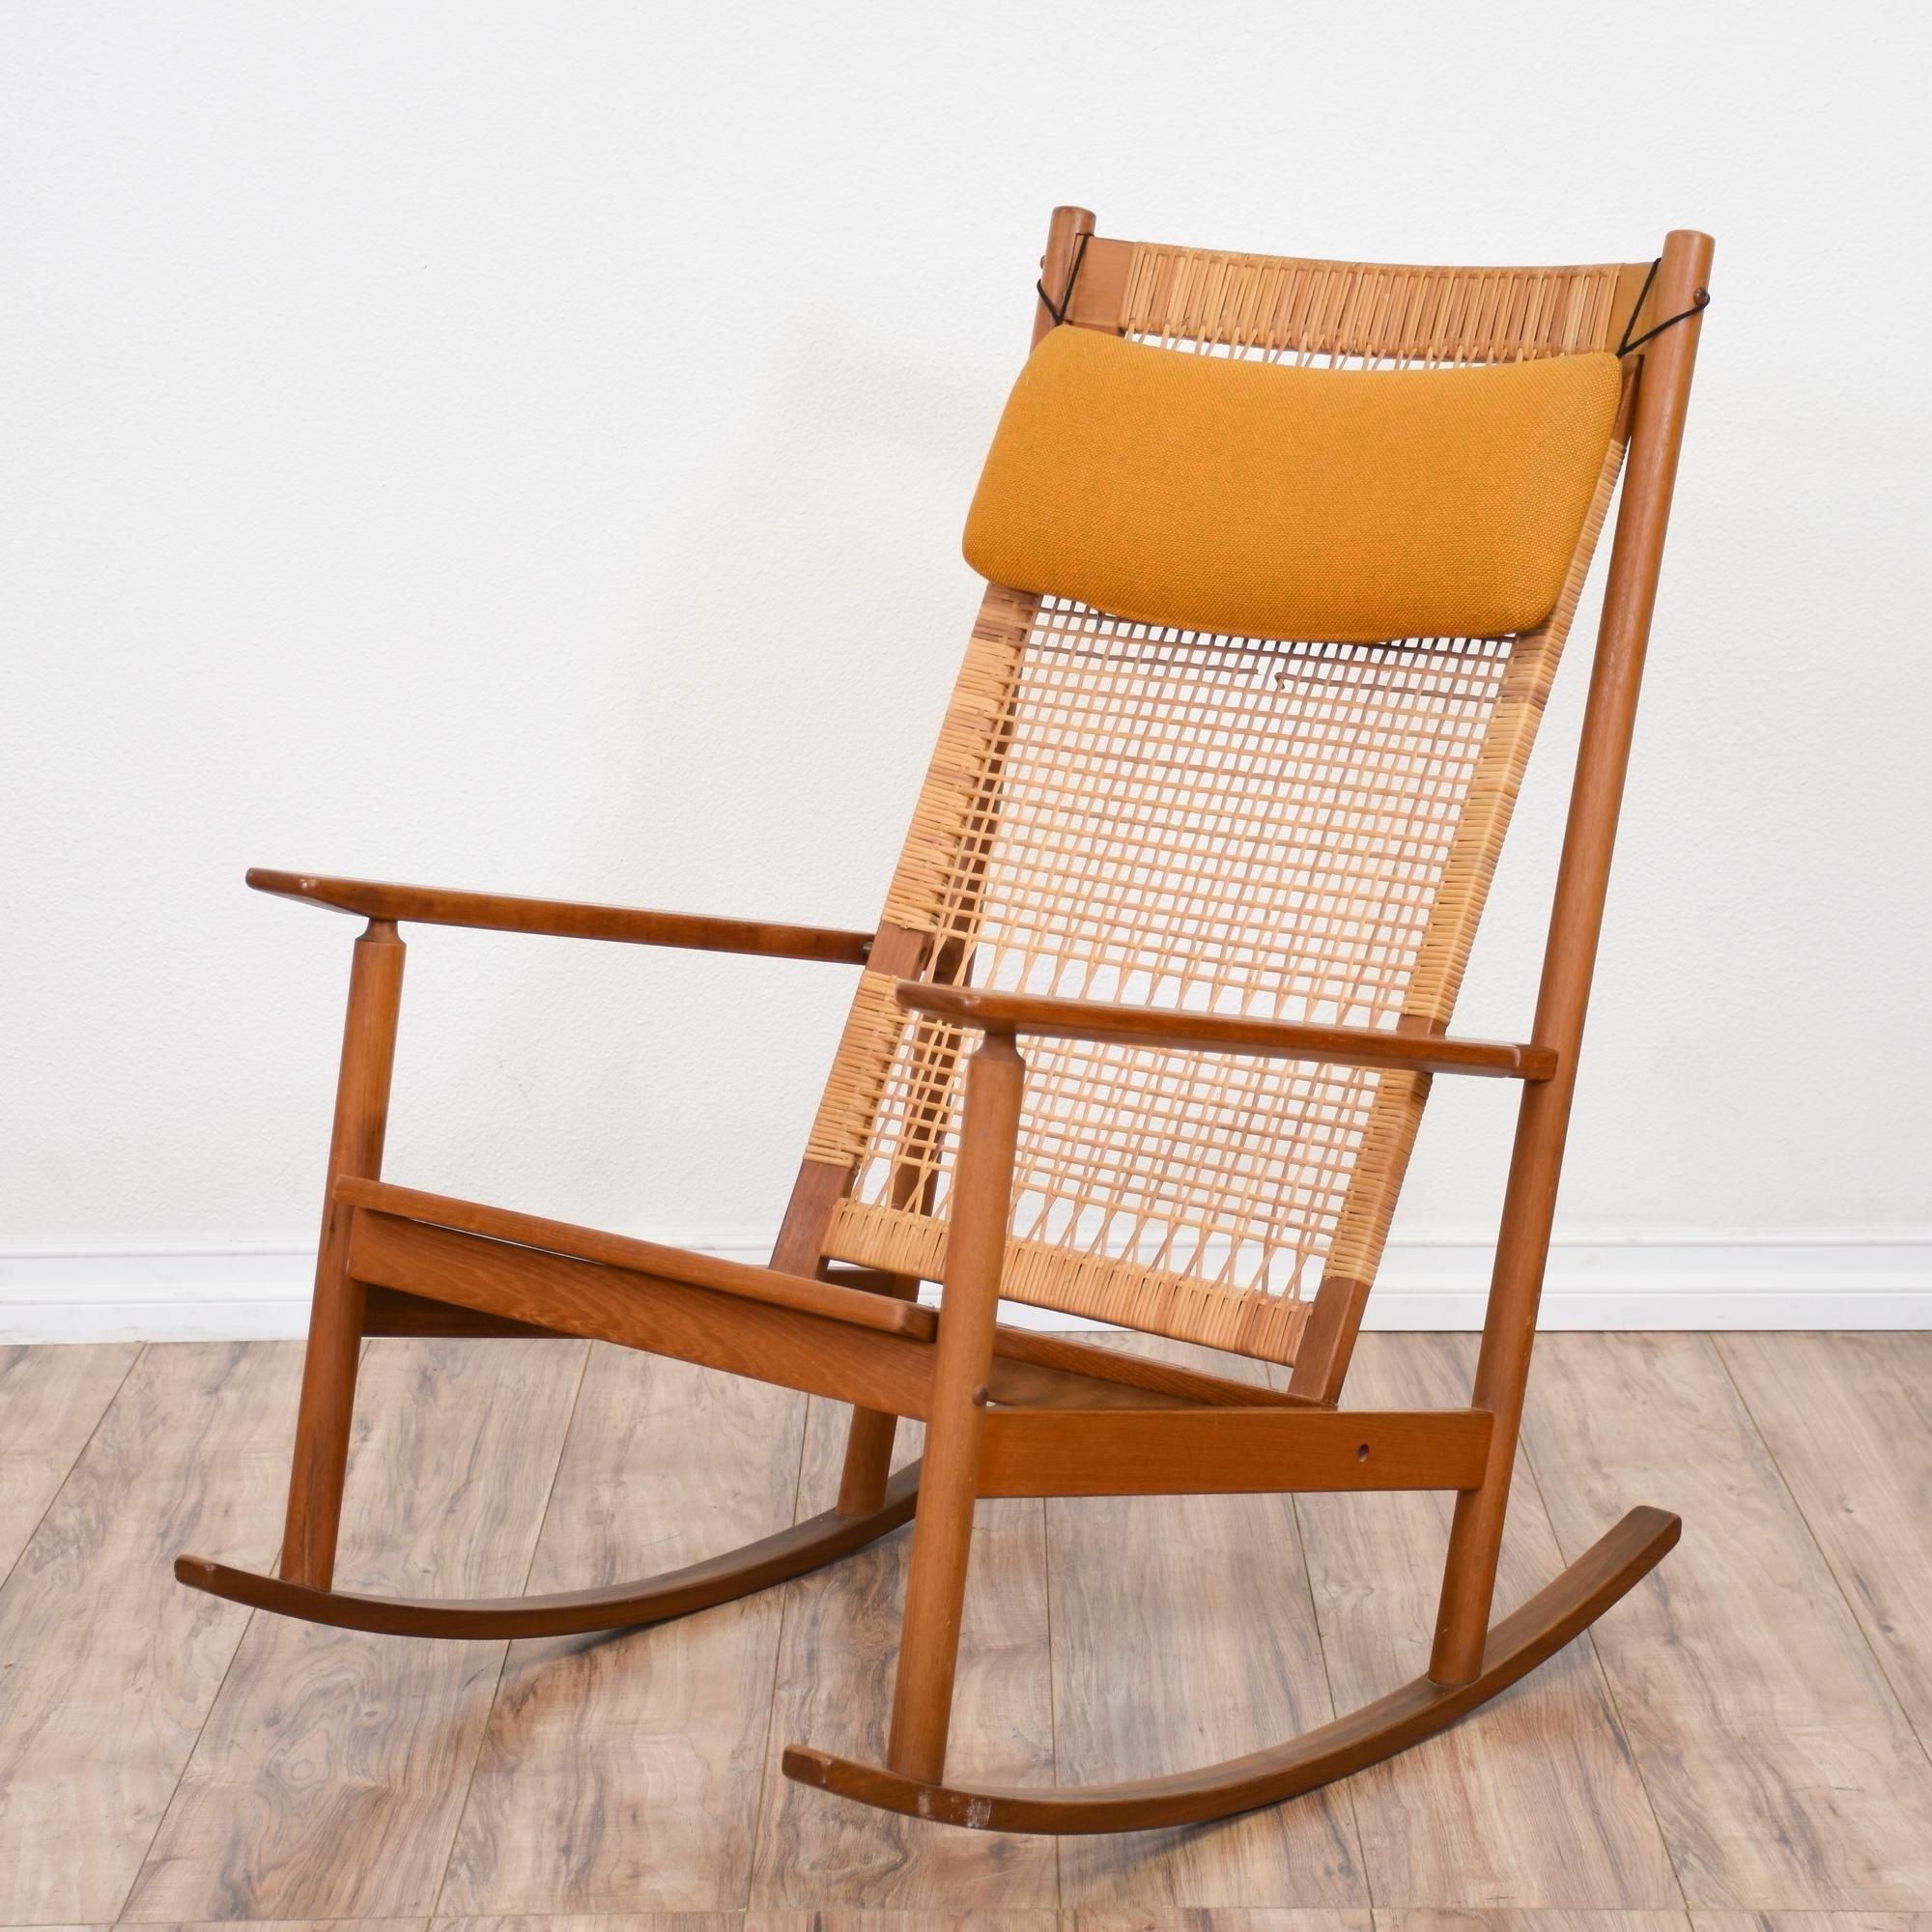 Fashionable This Mid Century Modern Rocking Chair Is Featured In A Solid Wood With Regard To Yellow Outdoor Rocking Chairs (View 9 of 15)